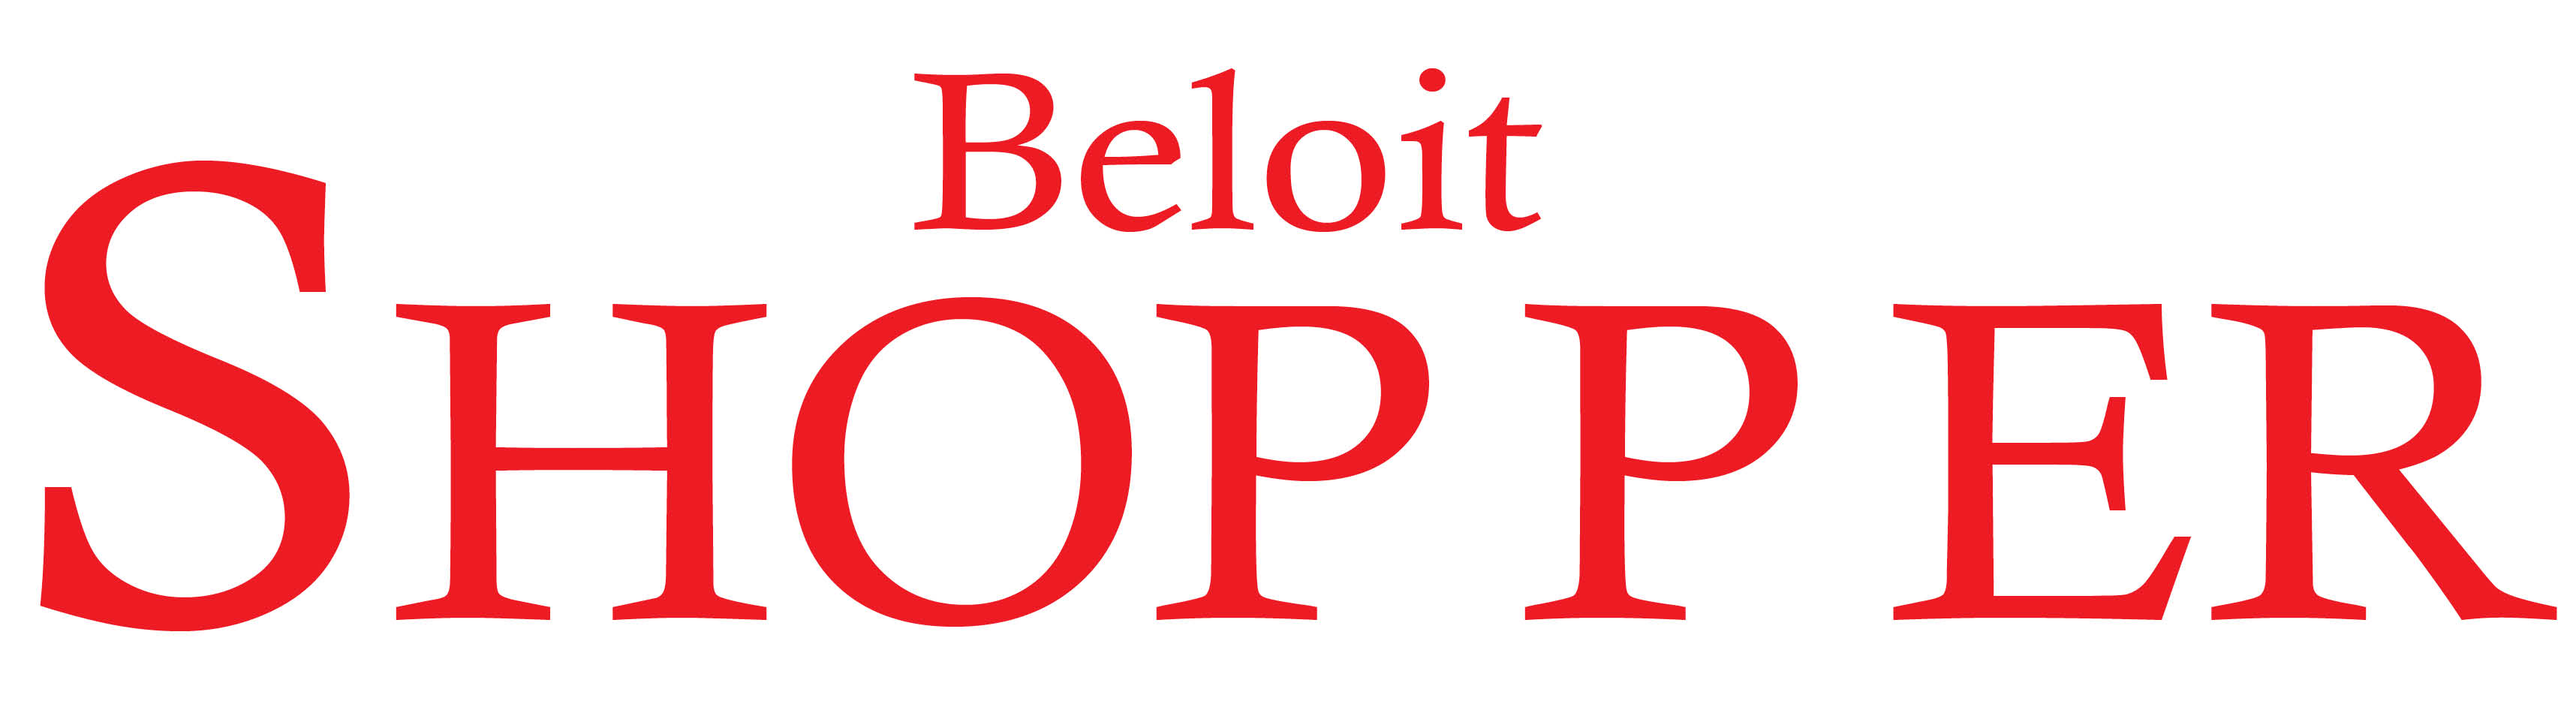 9/13/18 Beloit Shopper